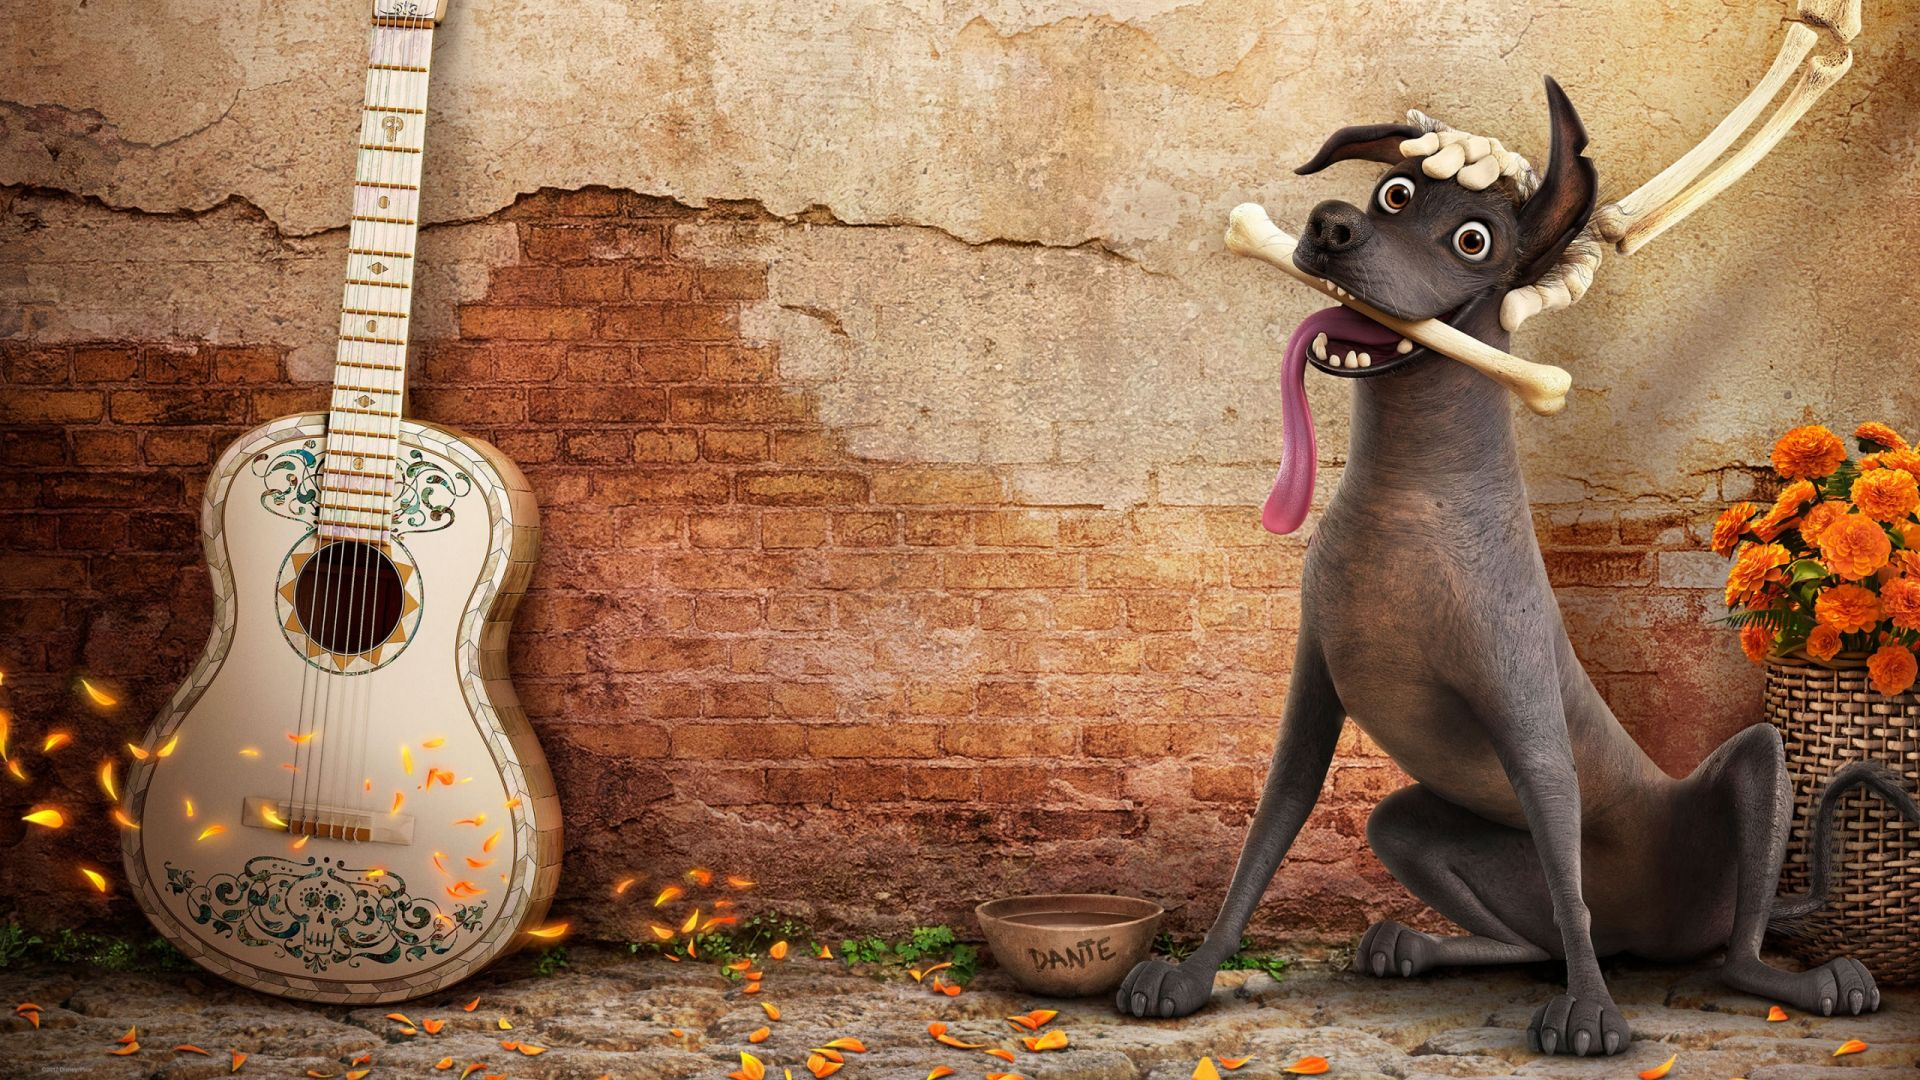 Coco, dog, guitar, best animation movies